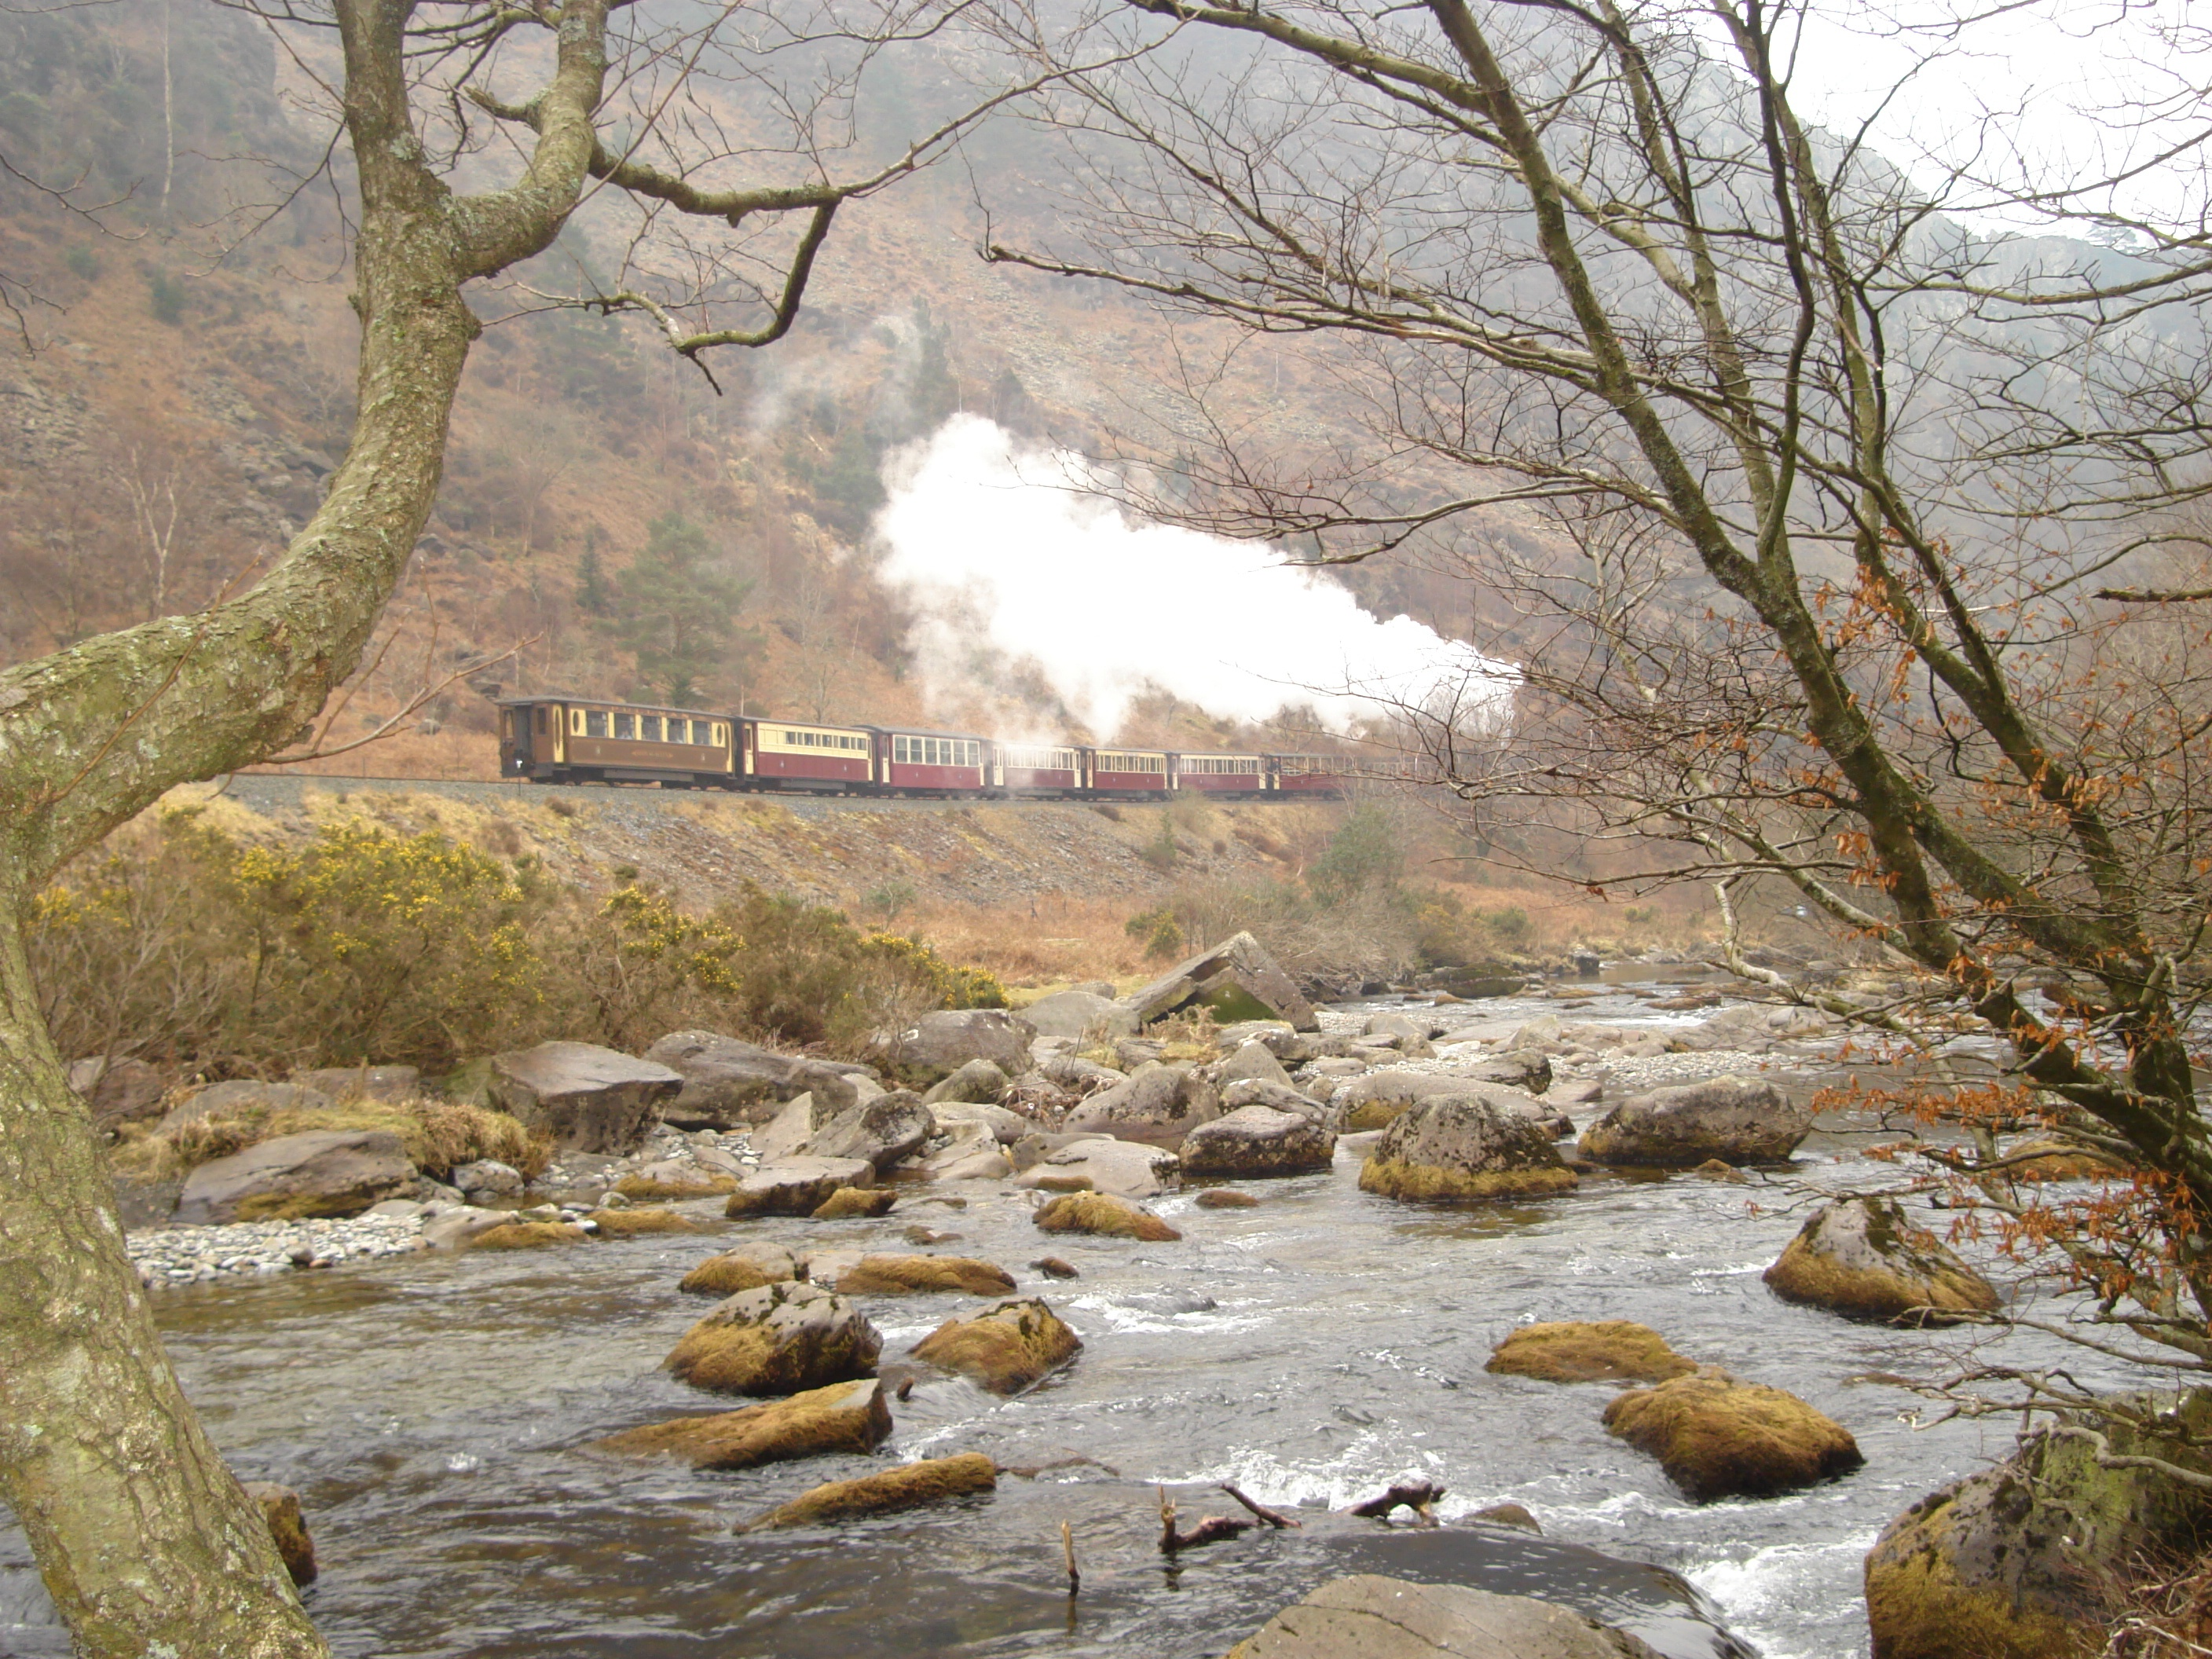 train-in-wales-uk